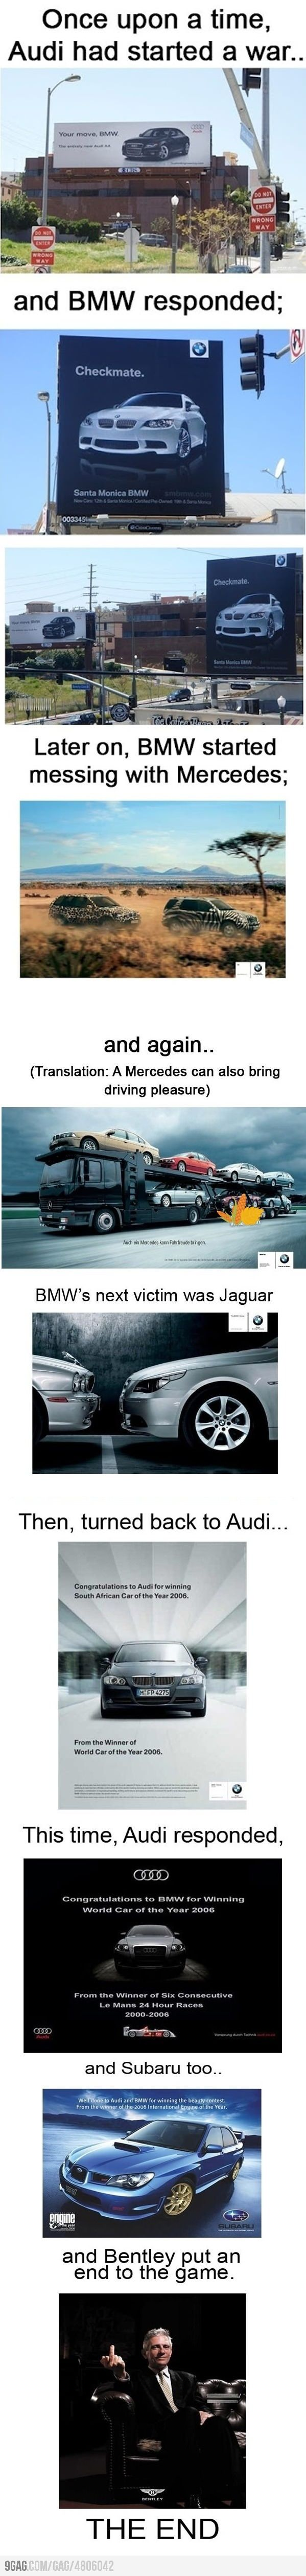 Audi vs BMW. One of the greatest battles in advertising history .